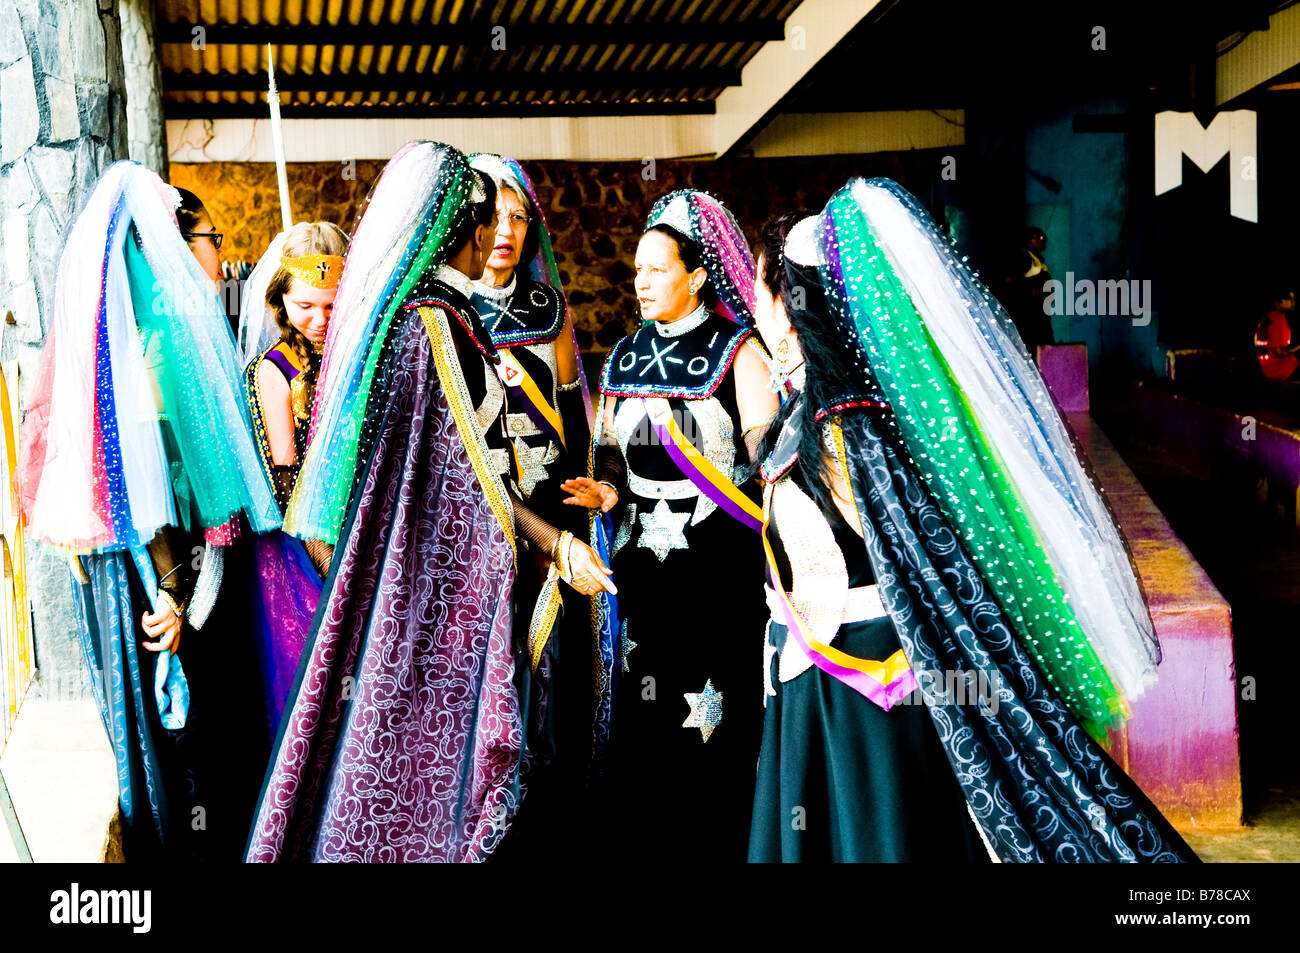 Religious ceremony of the Valley of Dawn ( Vale do Amanhecer ) religion. - Stock Image